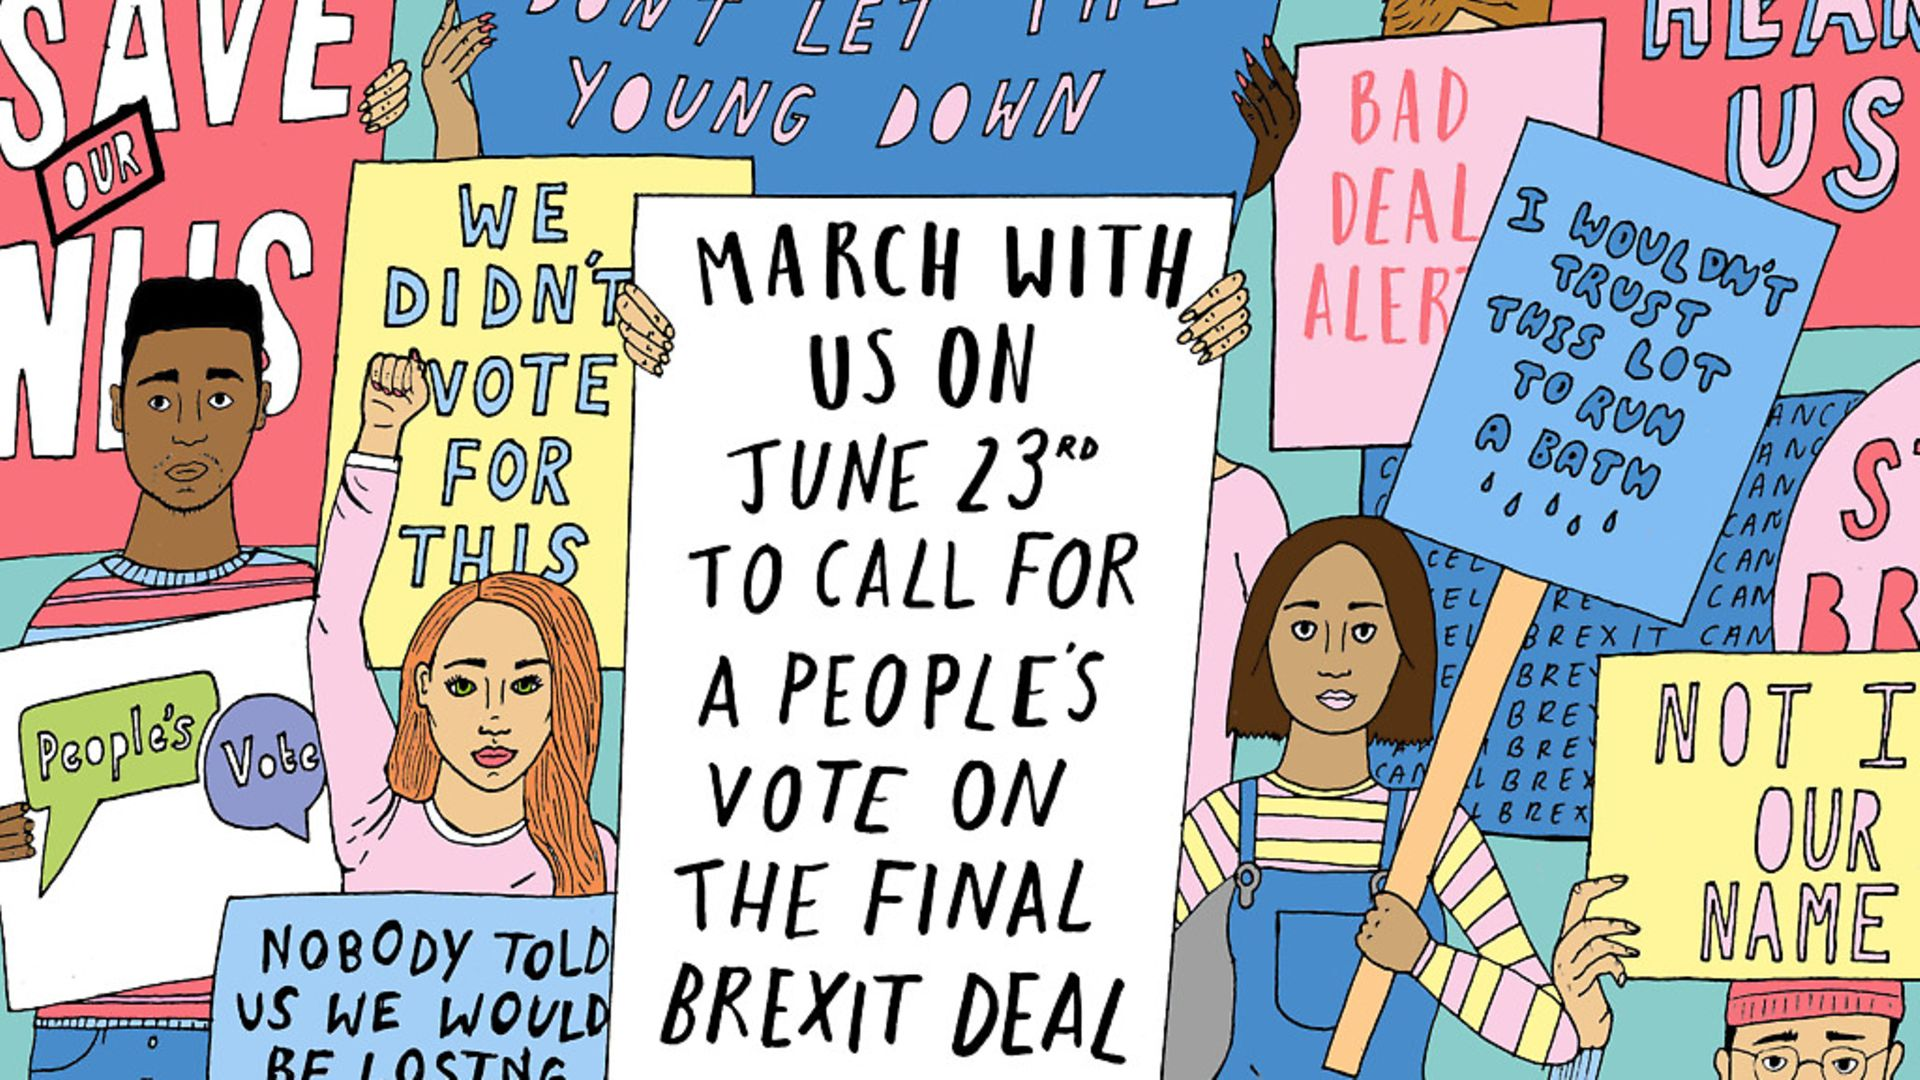 Campaigners will be marching for a People's Vote on Saturday 23rd June 2018. Illustration: Alice Skinner. - Credit: Archant